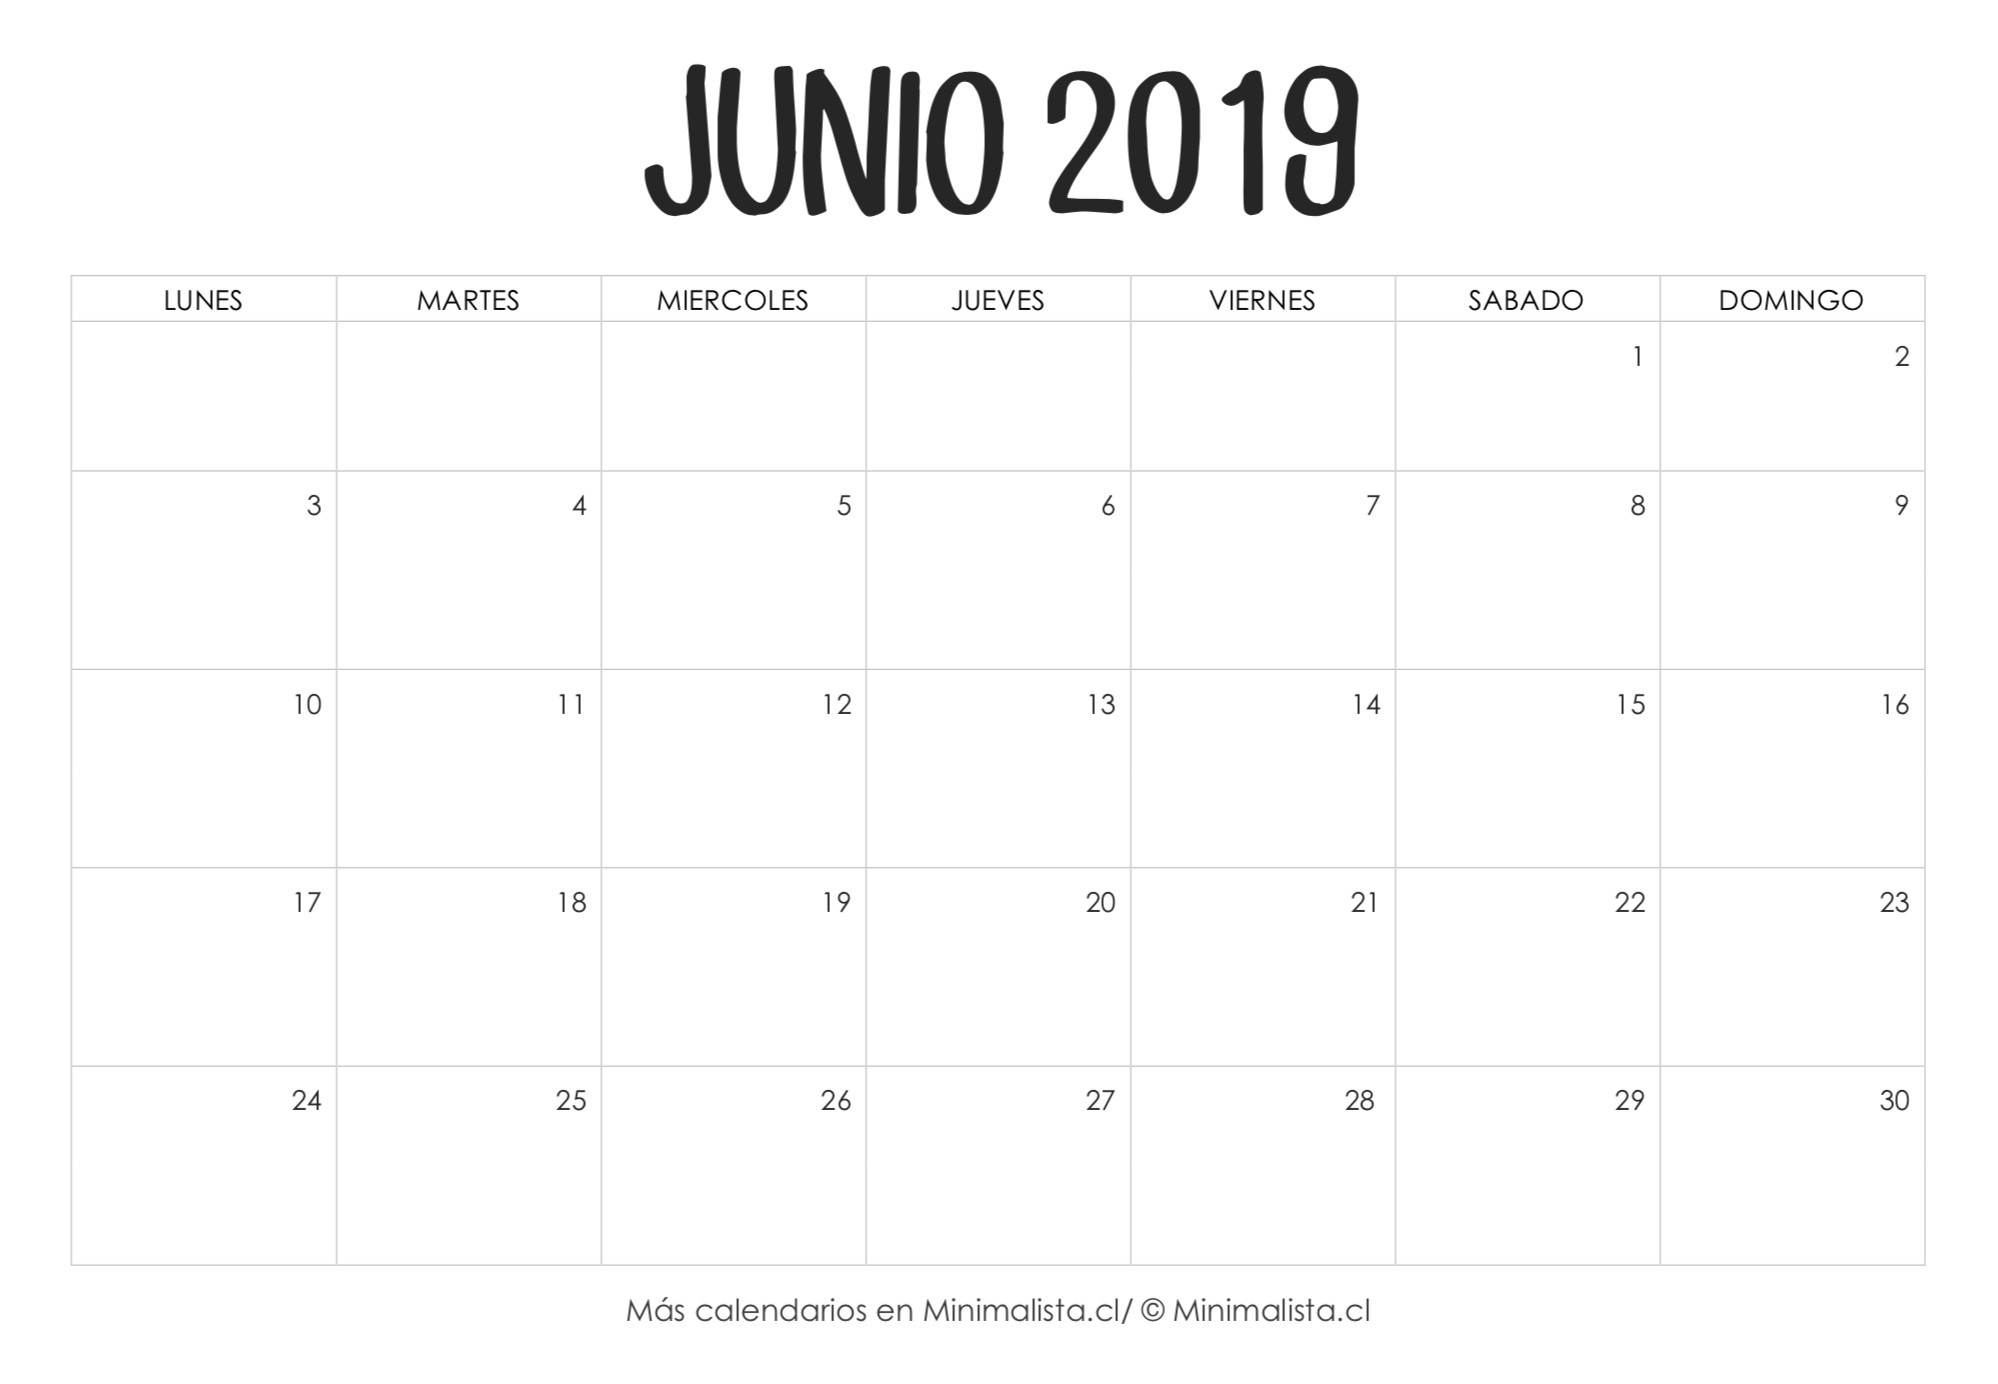 Calendario 2019 Republica Dominicana Pdf Más Populares Best Calendario Enero 2017 Para Imprimir Pdf Image Collection Of Calendario 2019 Republica Dominicana Pdf Más Populares Impreso 01 Mayo 18 Pages 1 40 Text Version